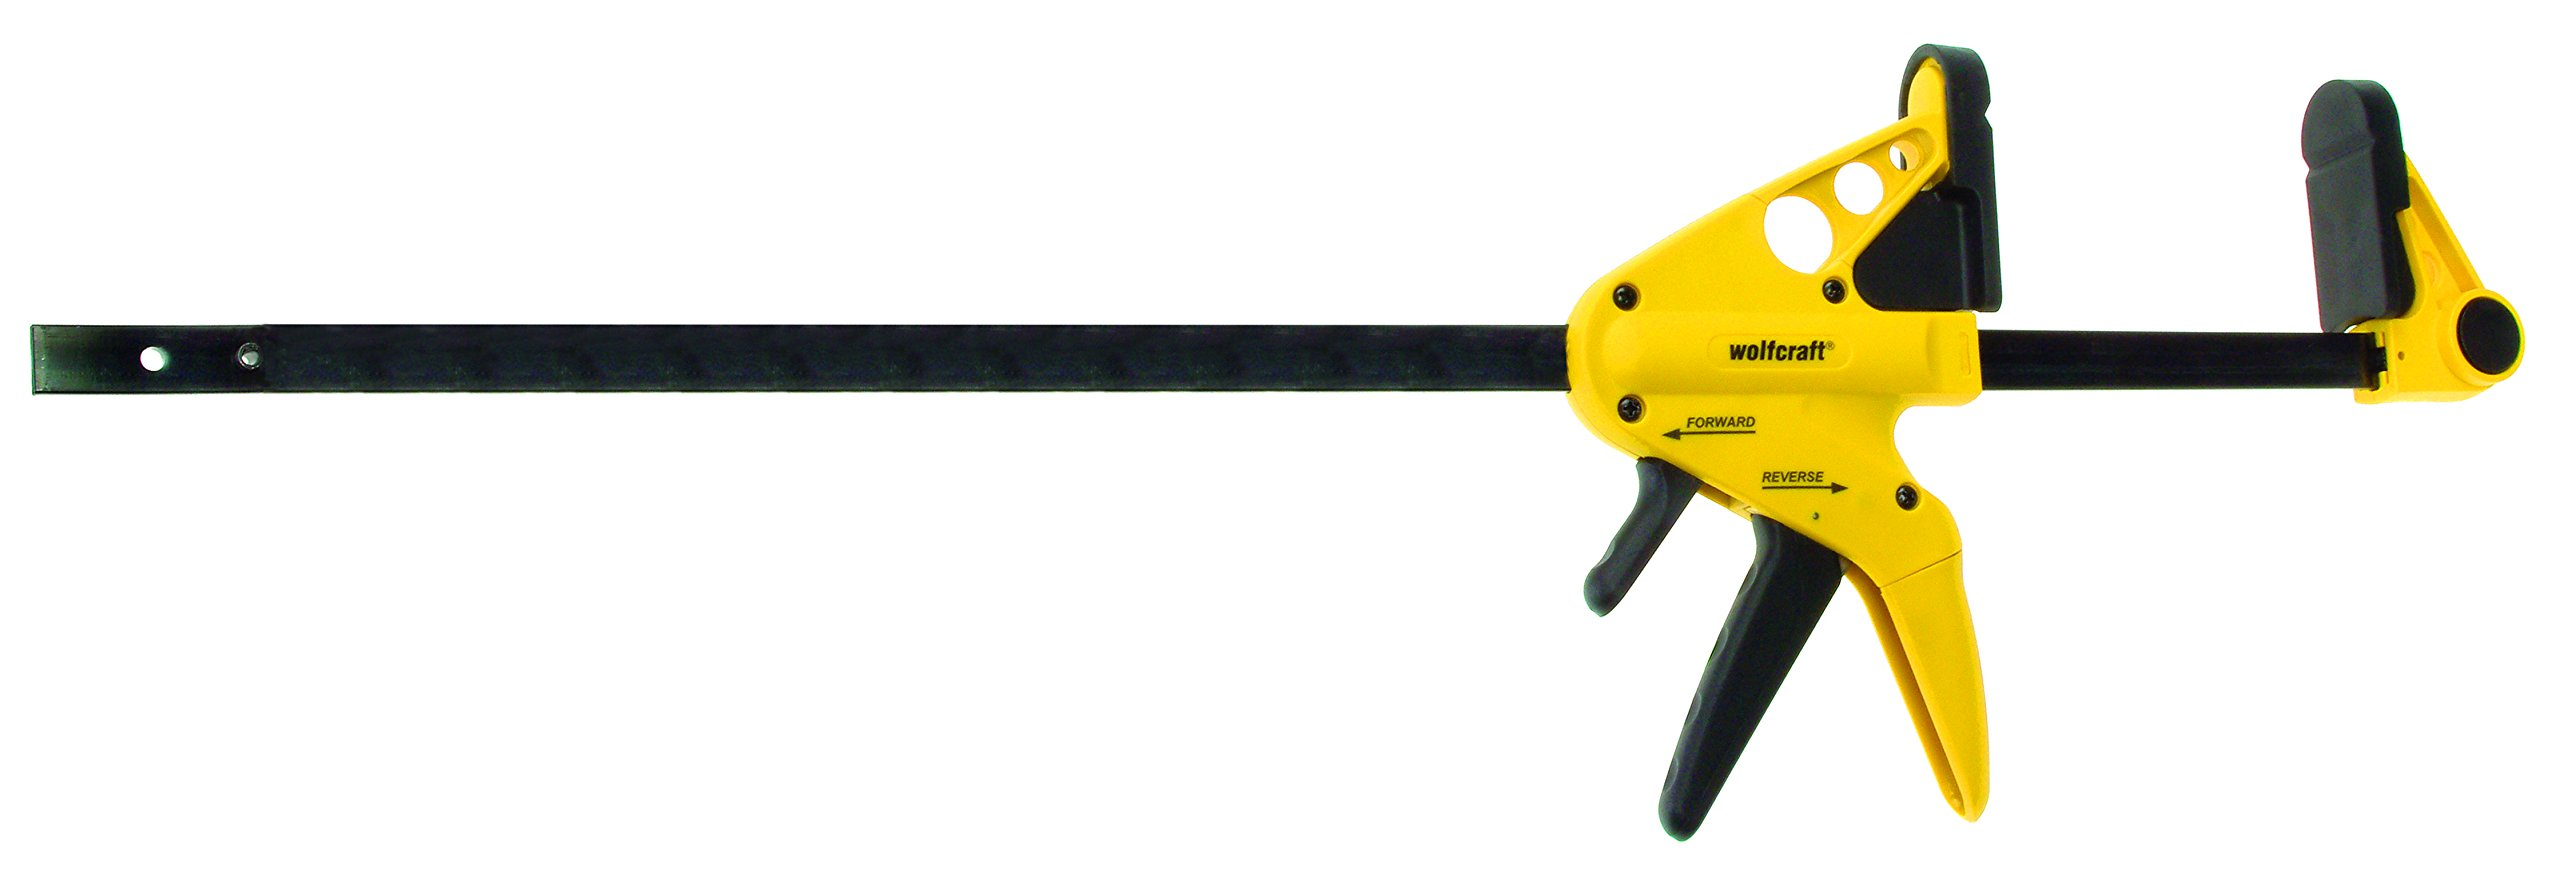 wolfcraft 3450403 Quick-Jaw One-Hand Bar Clamp and Spreader, 24in.